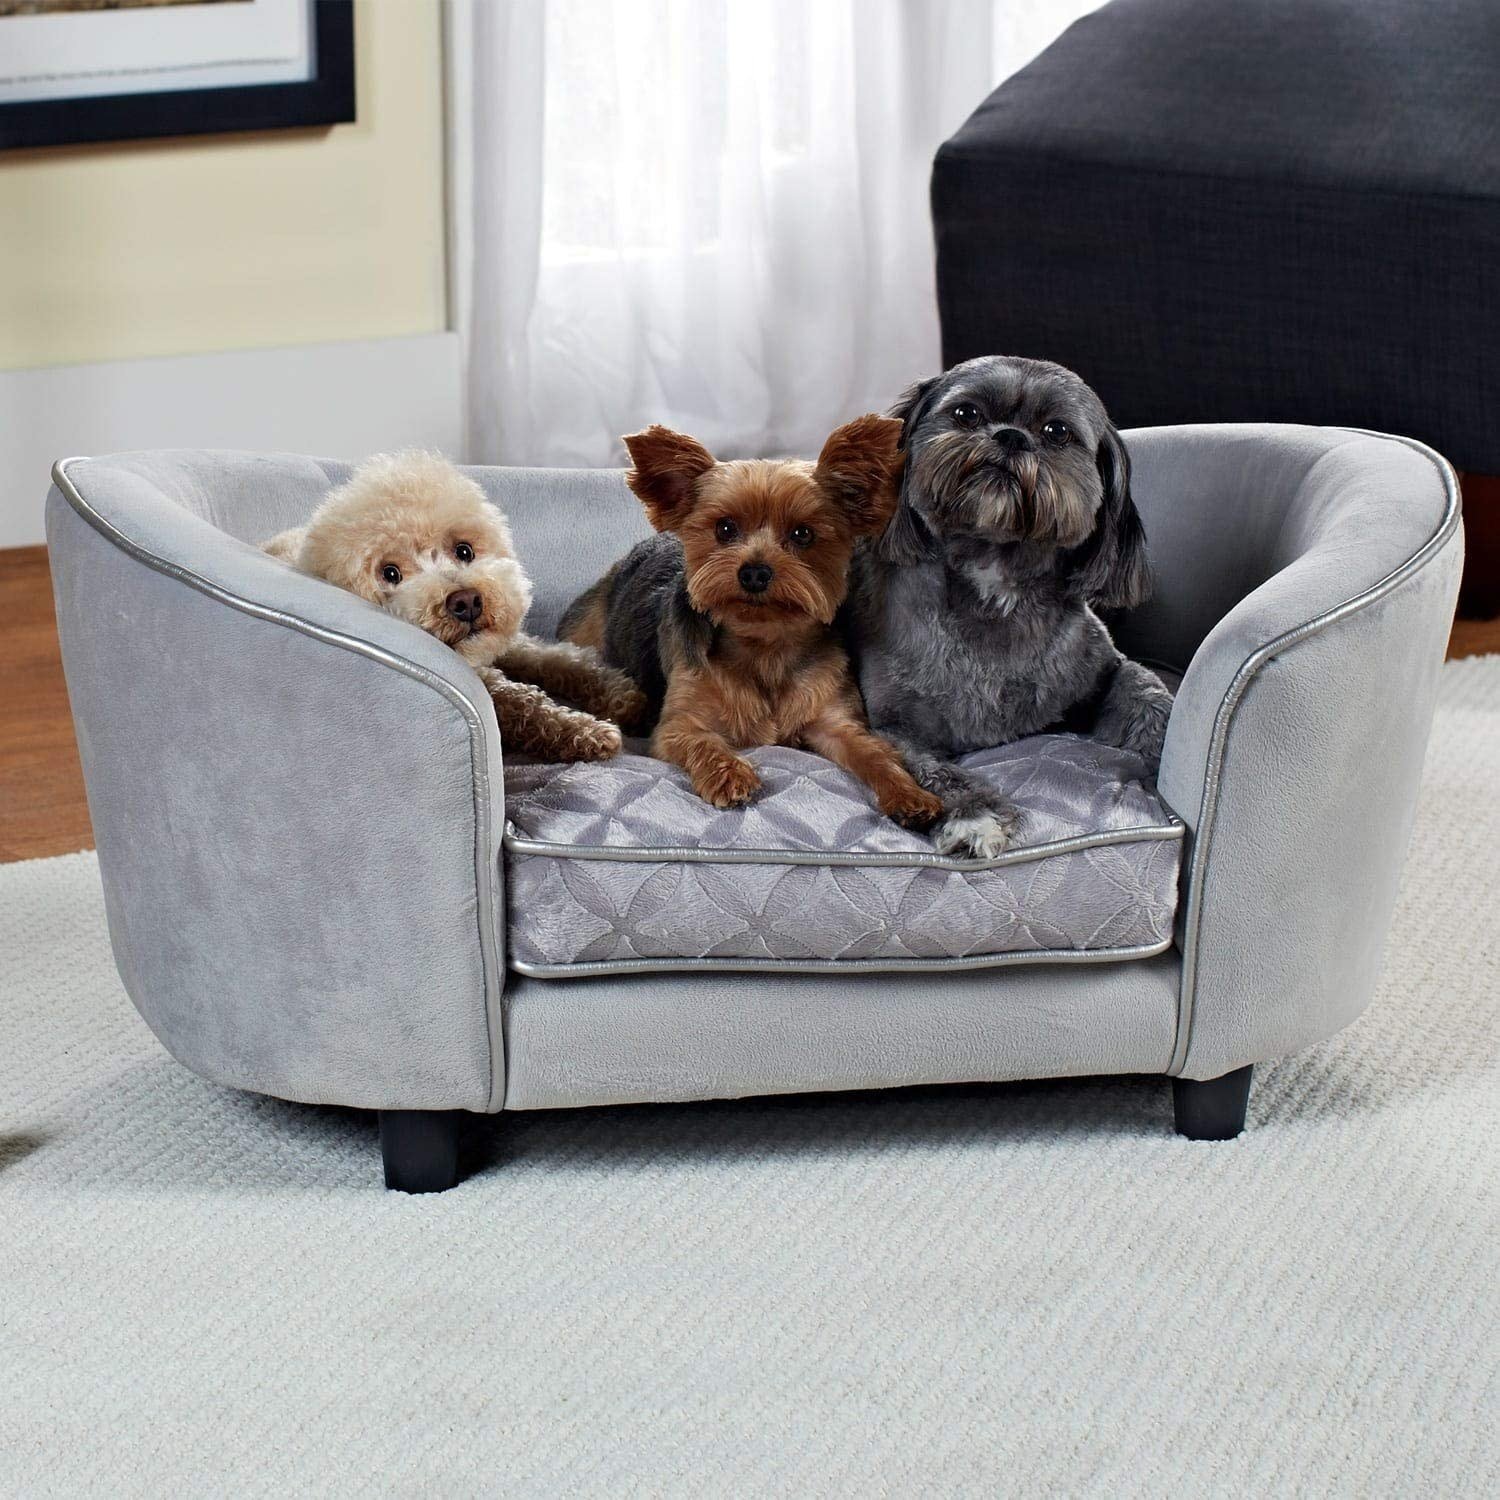 Three dogs sitting on the mini sofa bed